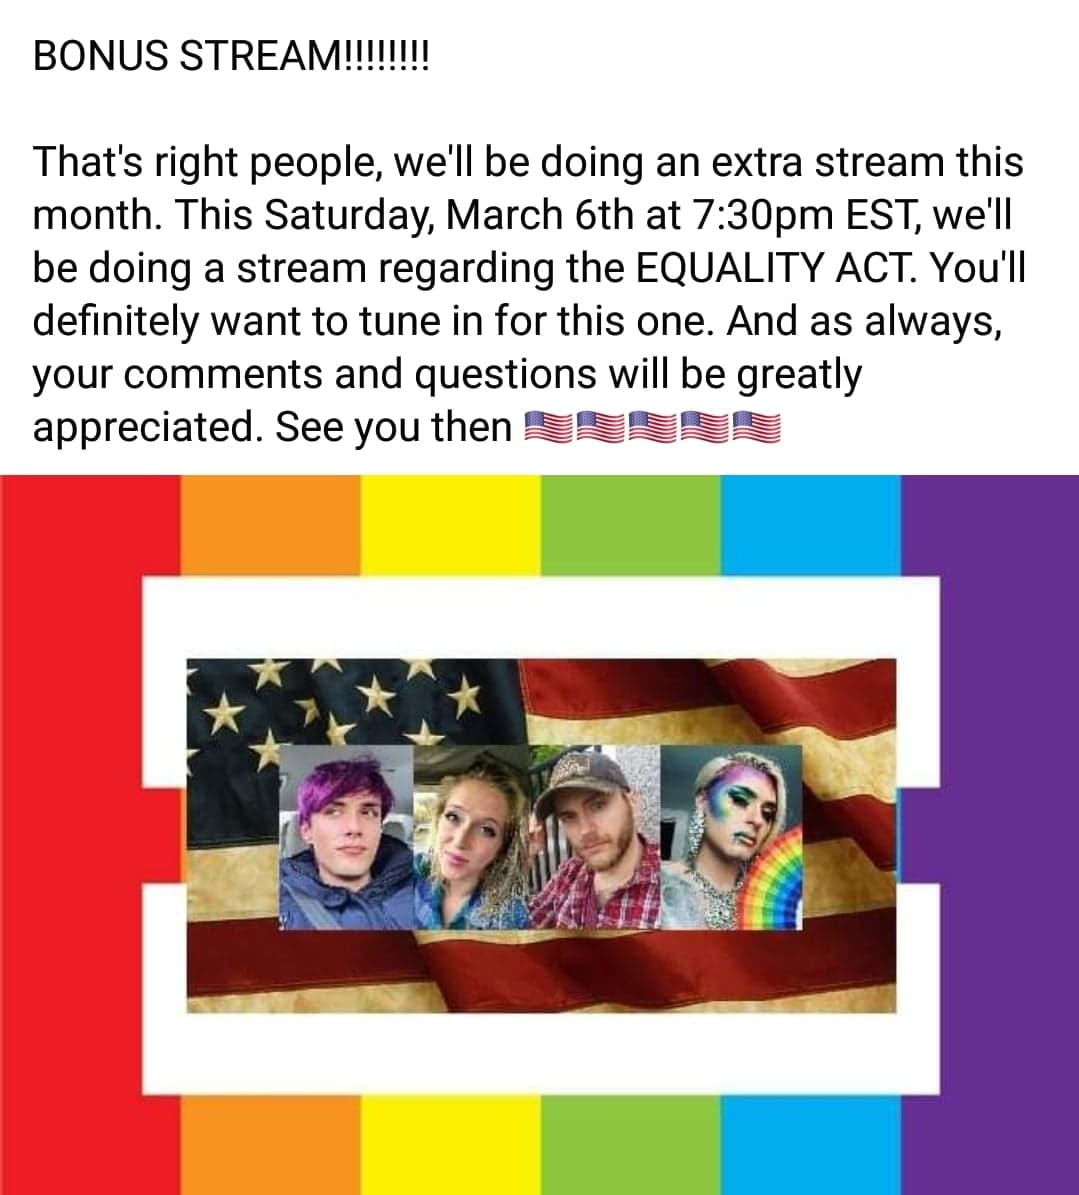 Bonus Stream!!! Join us here on #TheIssuesFromLeft2Right as we discuss the #EqualityAct on #Saturday, March 6th, at 7:30pm EST. #TheEqualityAct #Government #Religion #Politics #HumanRights #LGBTQ #LGBT #ReligiousFreedom #America #Freedom